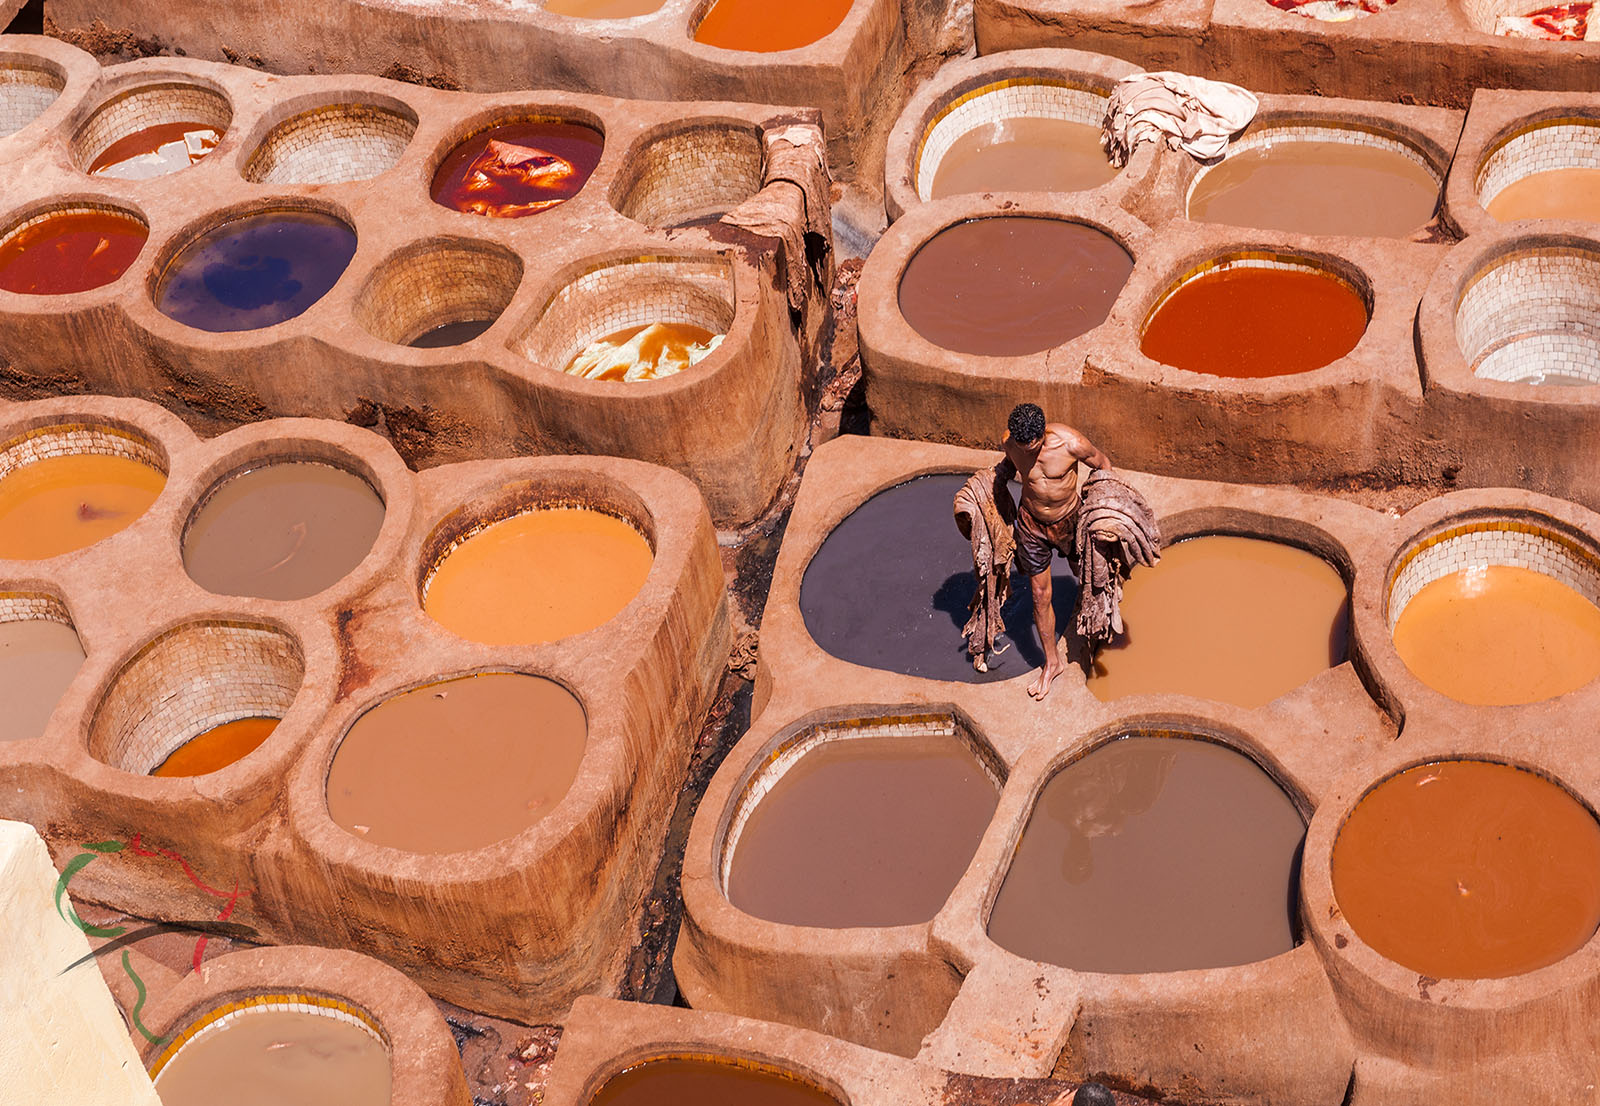 vats for dying leather in Chouara Leather Tannery. Fes